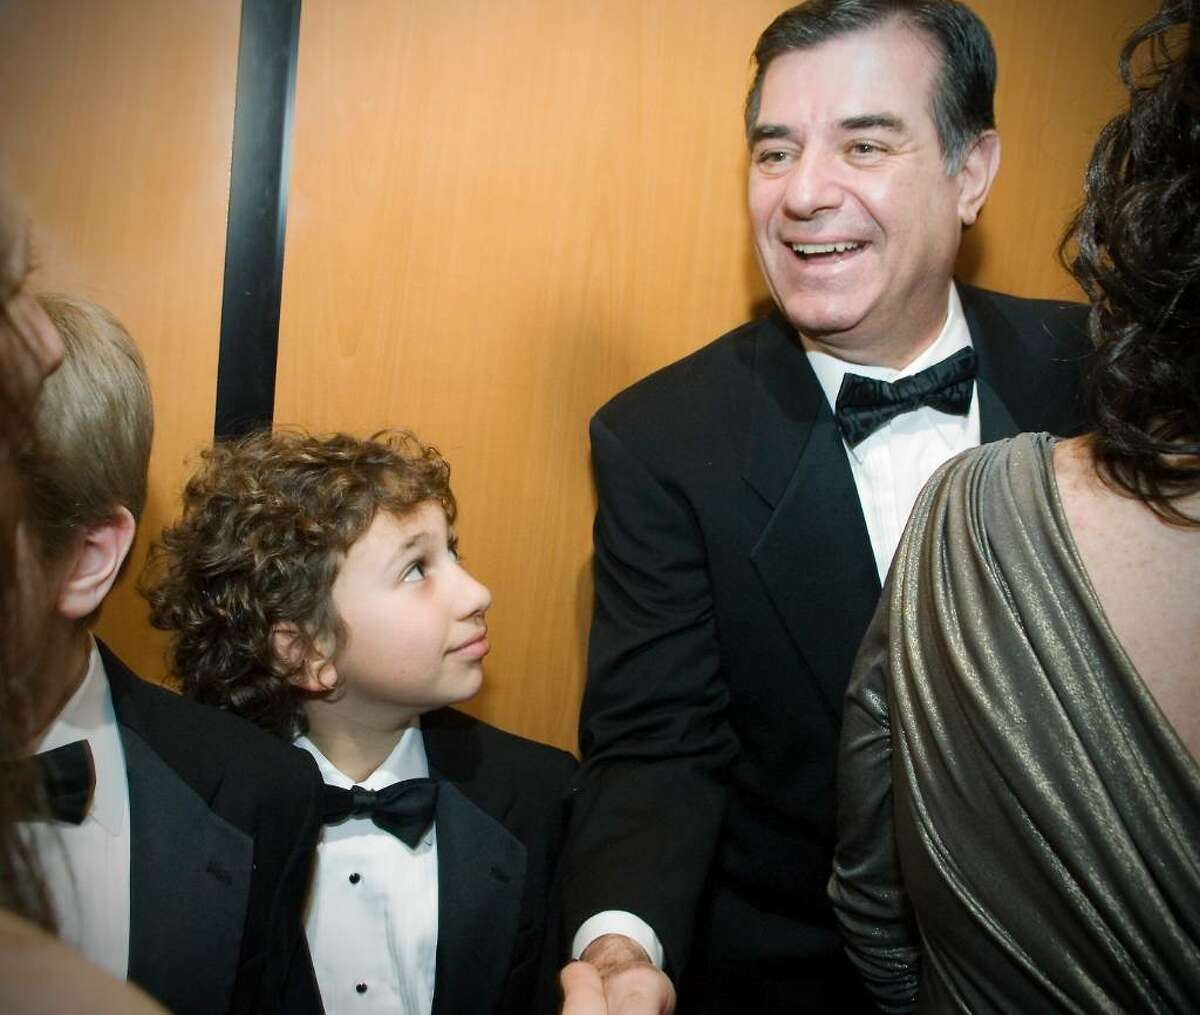 """Mayor Pavia greets guests in the elevator as Evan Hyman, 10 of Stamford, jumps in for the ride at """"A Thousand Stars Shine Together"""", A Gala Inaugural Celebration at The Palace Theater in Stamford, Conn. on Friday, January 15, 2009."""